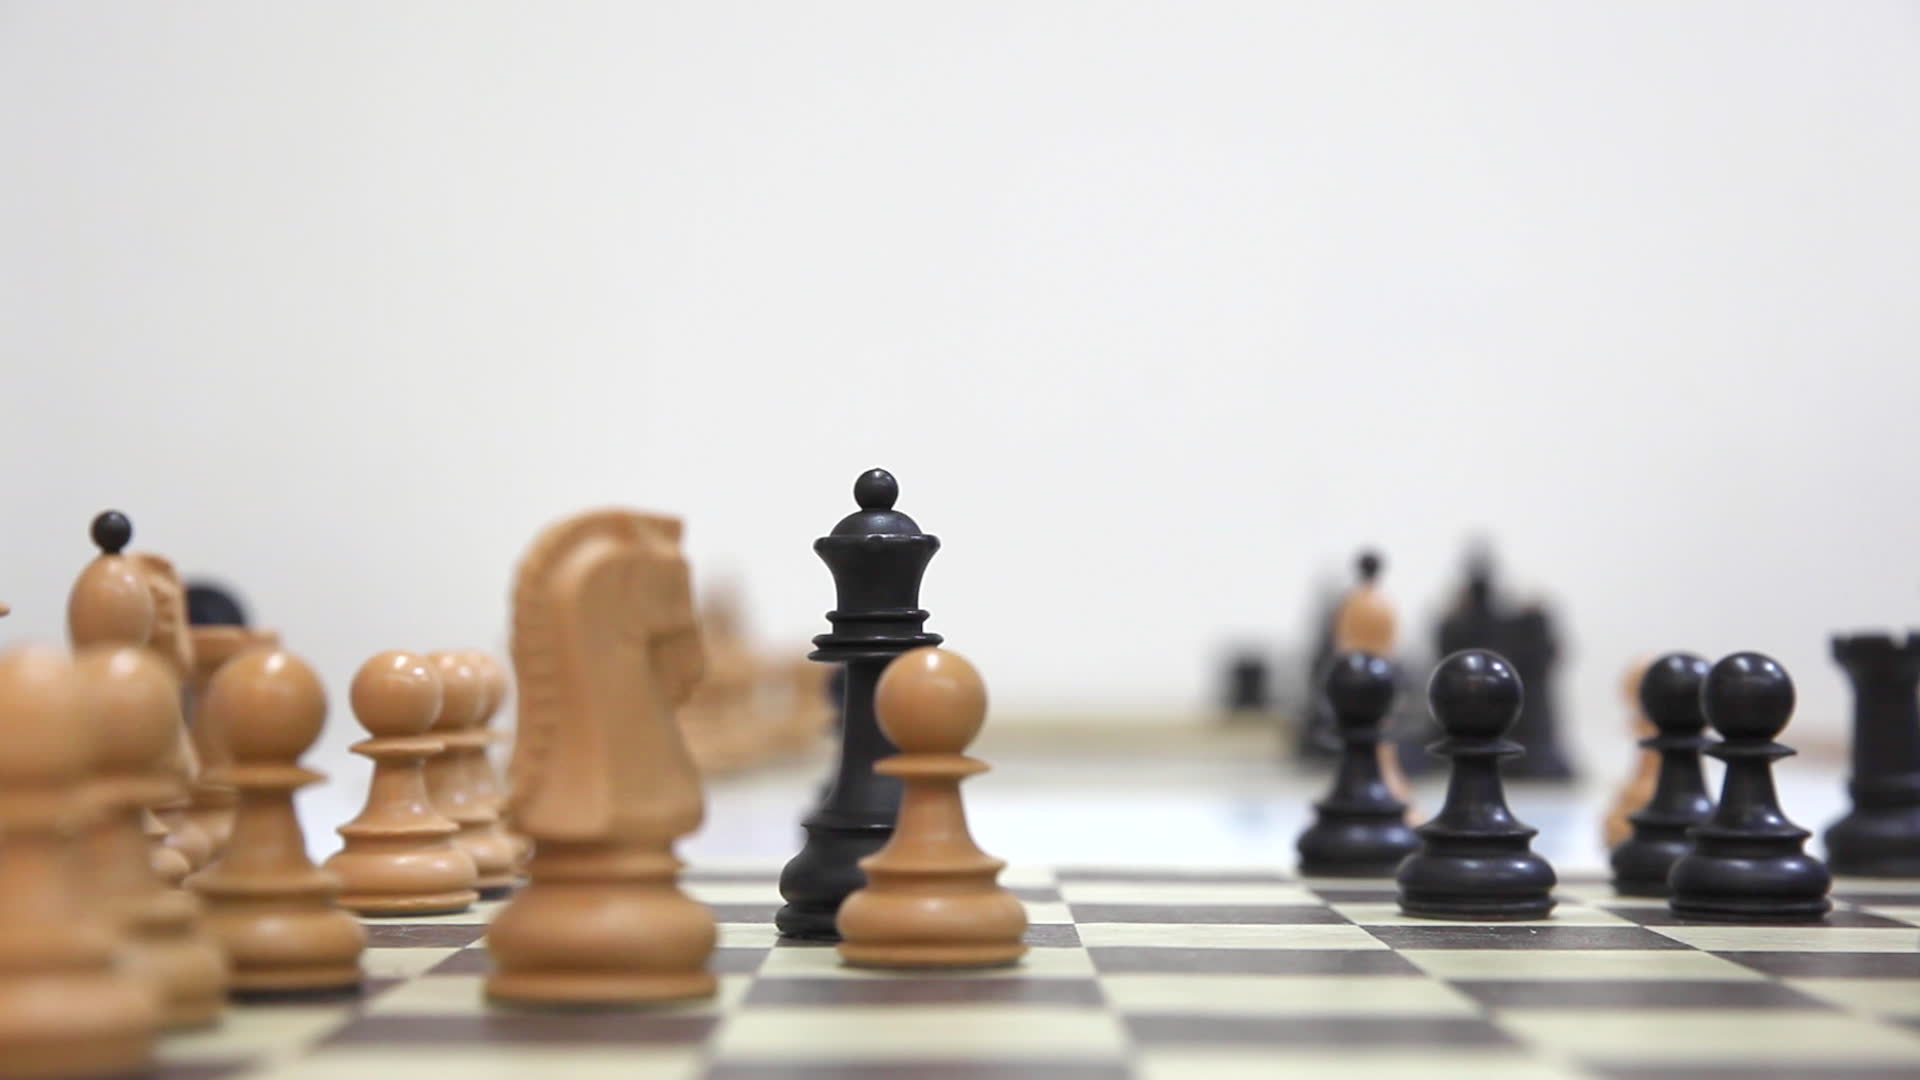 stock-footage-in-a-chess-game-on-chessboard-black-queen-take-white-queen